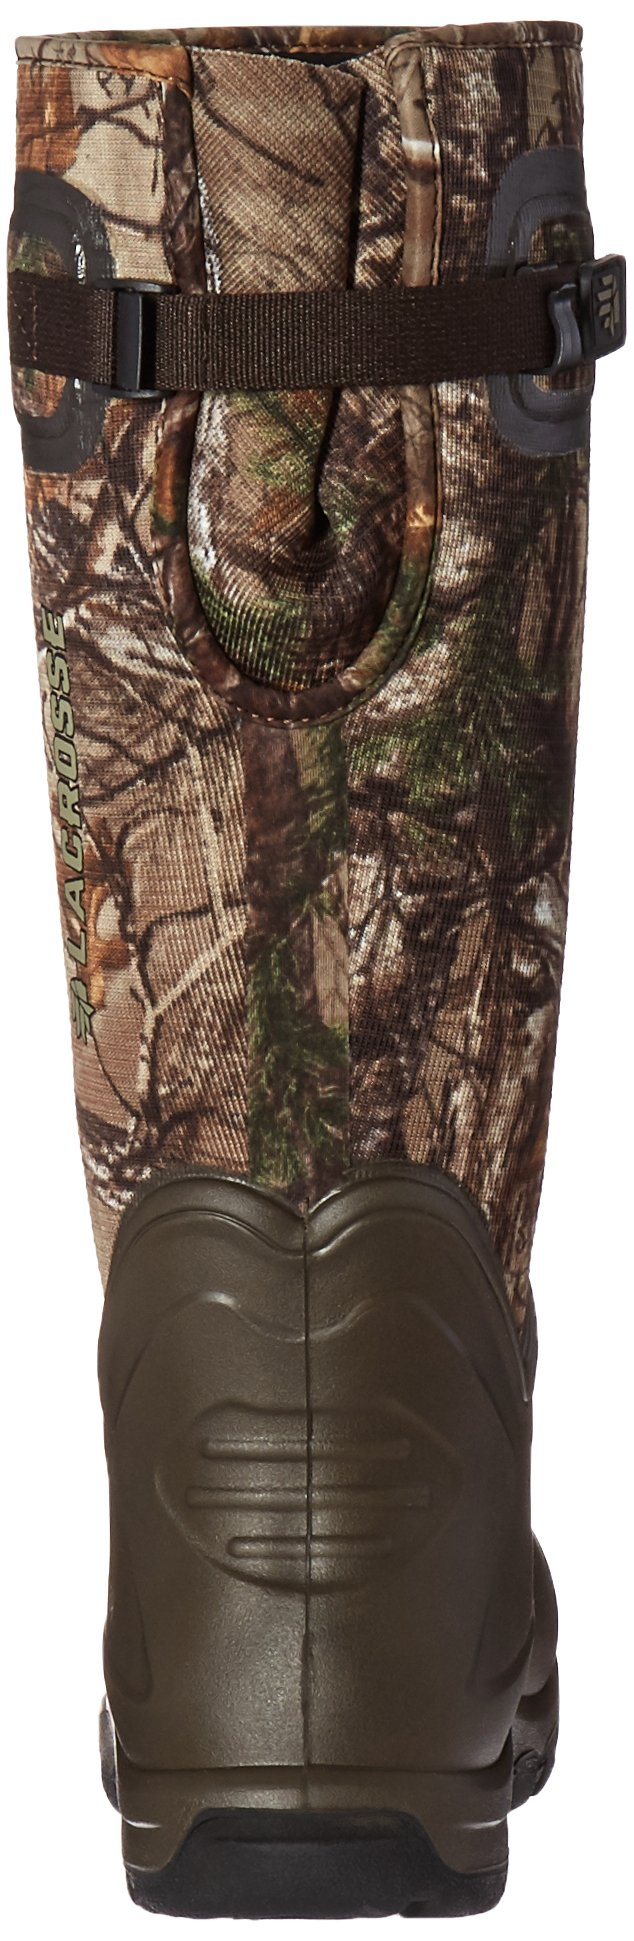 Lacrosse Men's Aerohead Sport 16'' 3.5MM Hunting Shoes Realtree Extra 13 M US by Lacrosse (Image #2)